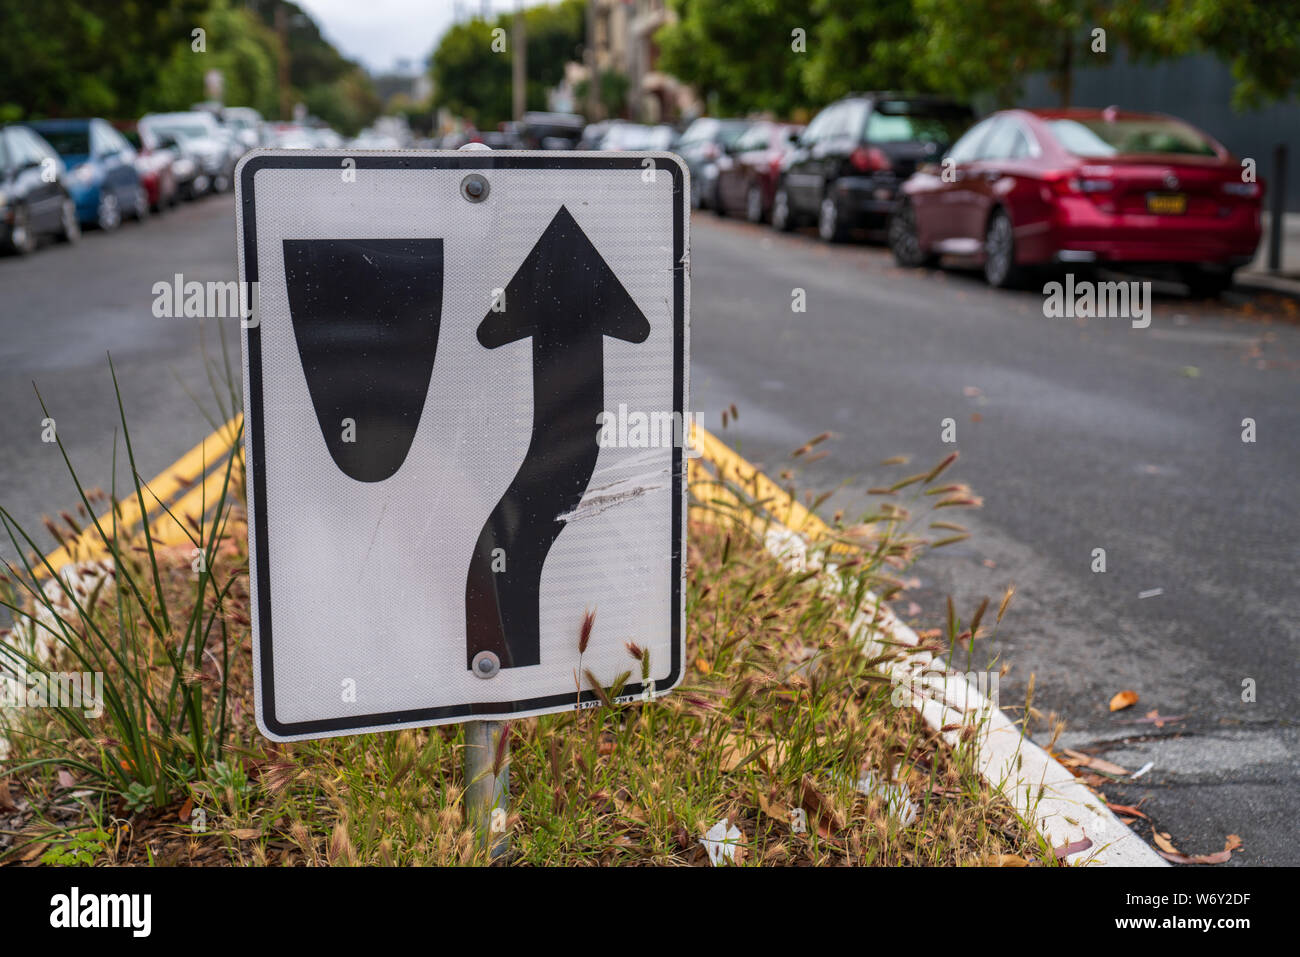 Cars To Go >> Traffic Sign Directing Cars To Go To Right Of Median Along